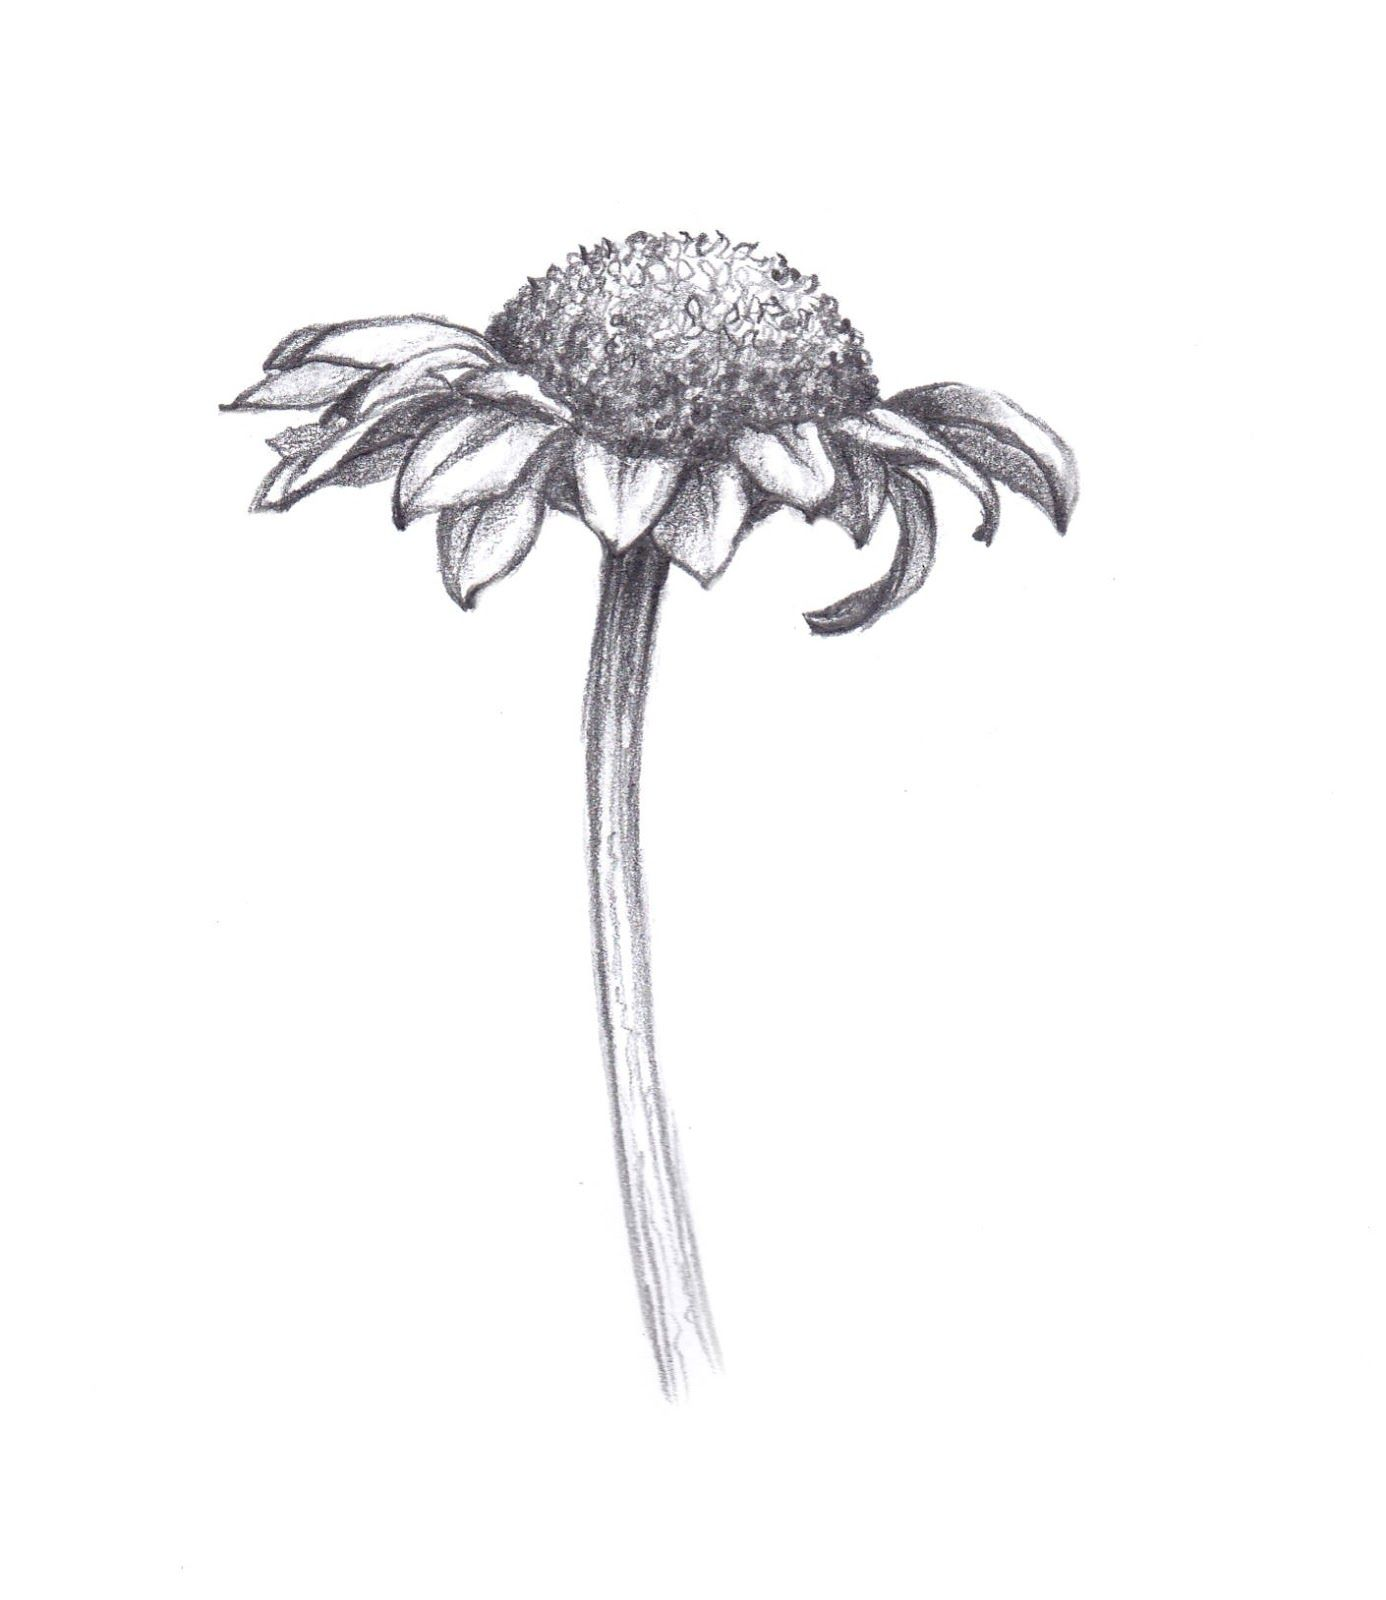 Daisy meaning innocence | Tattoos | Pinterest | Sketches ...